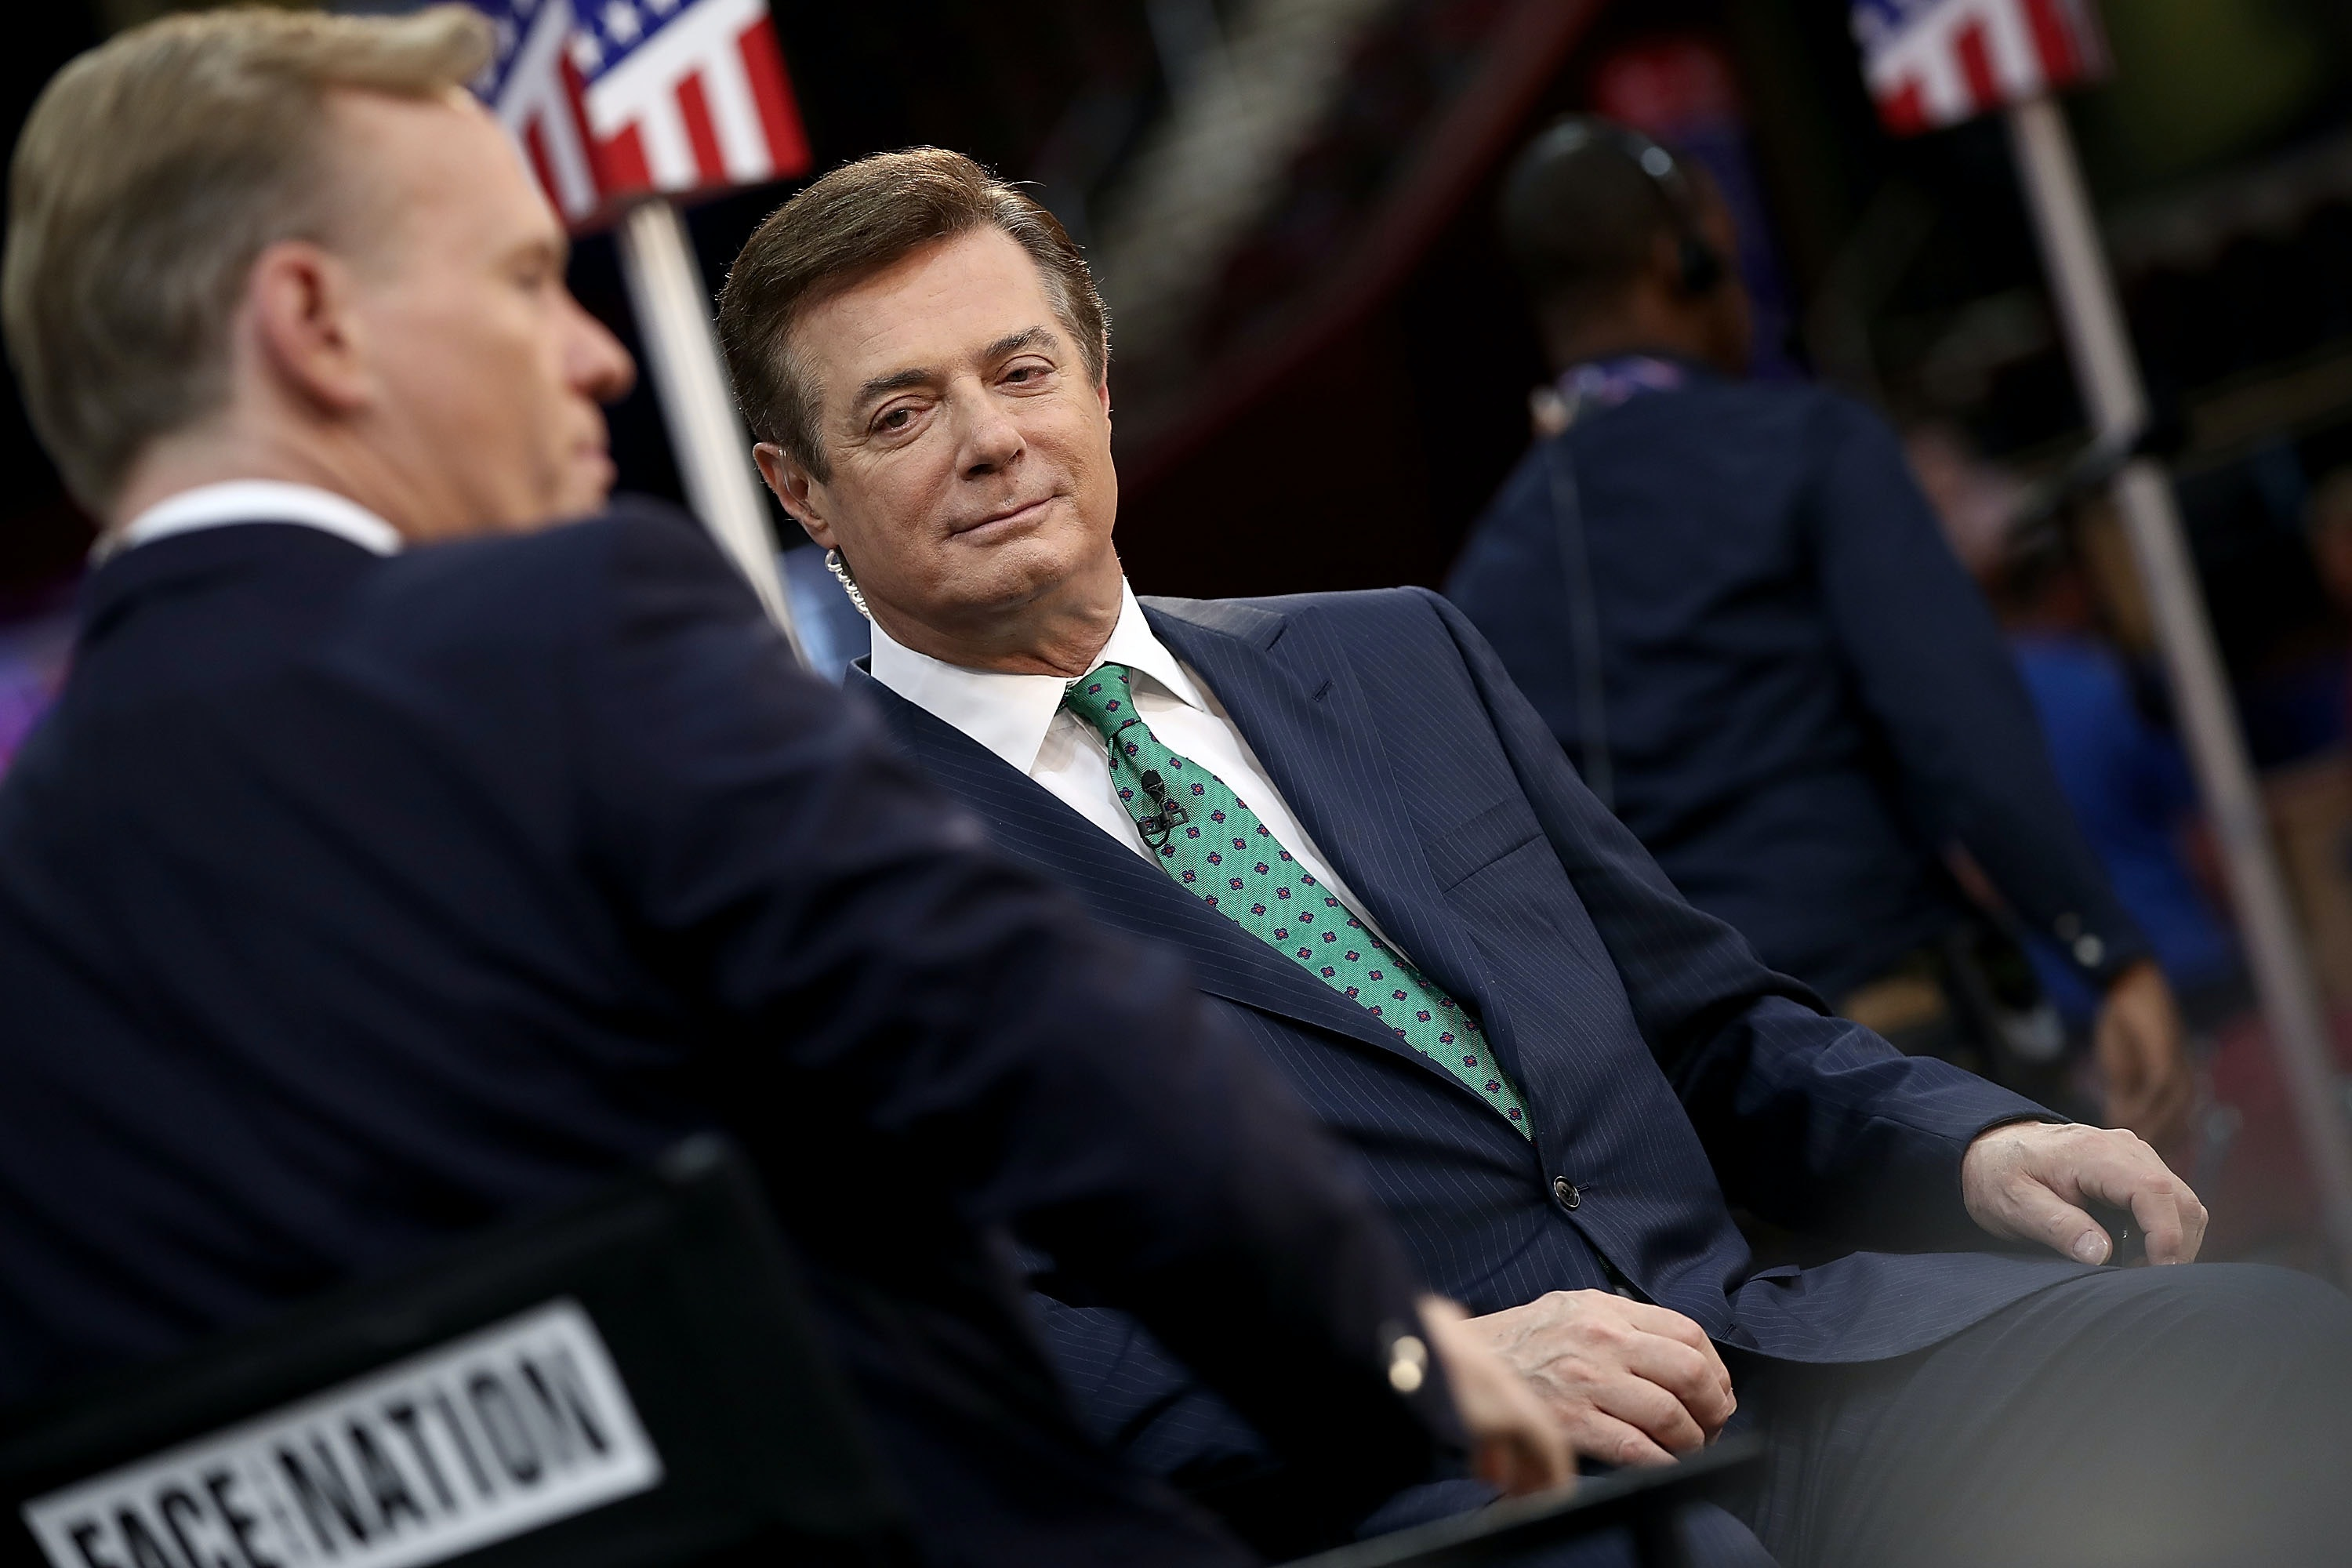 Former Trump campaign chairman Manafort 'to register as foreign agent'